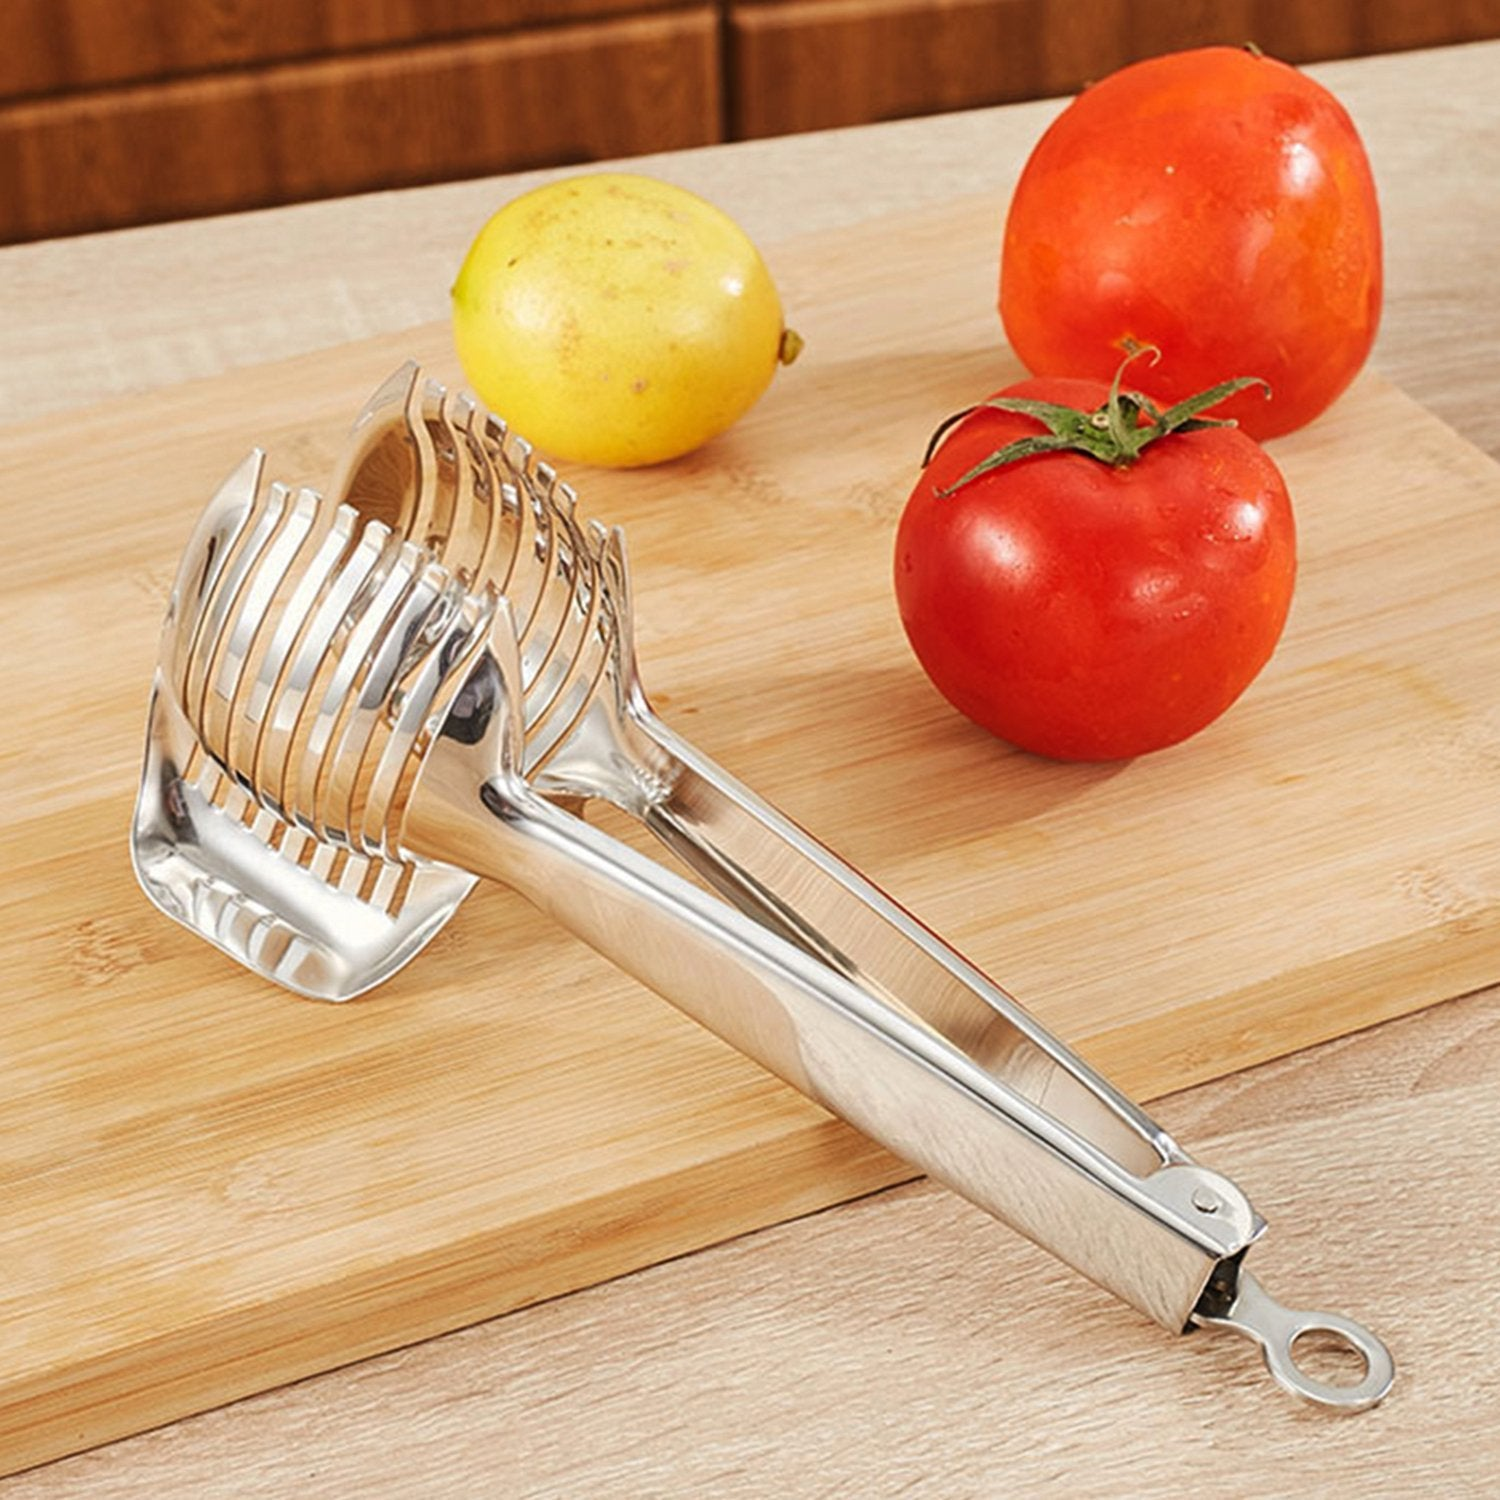 Kitchen Cutting Aid Gadgets Tool Lemon Cutter Multipurpose Handheld Round Fruit Tongs Stainless Steel Onion Holder Easy Slicing